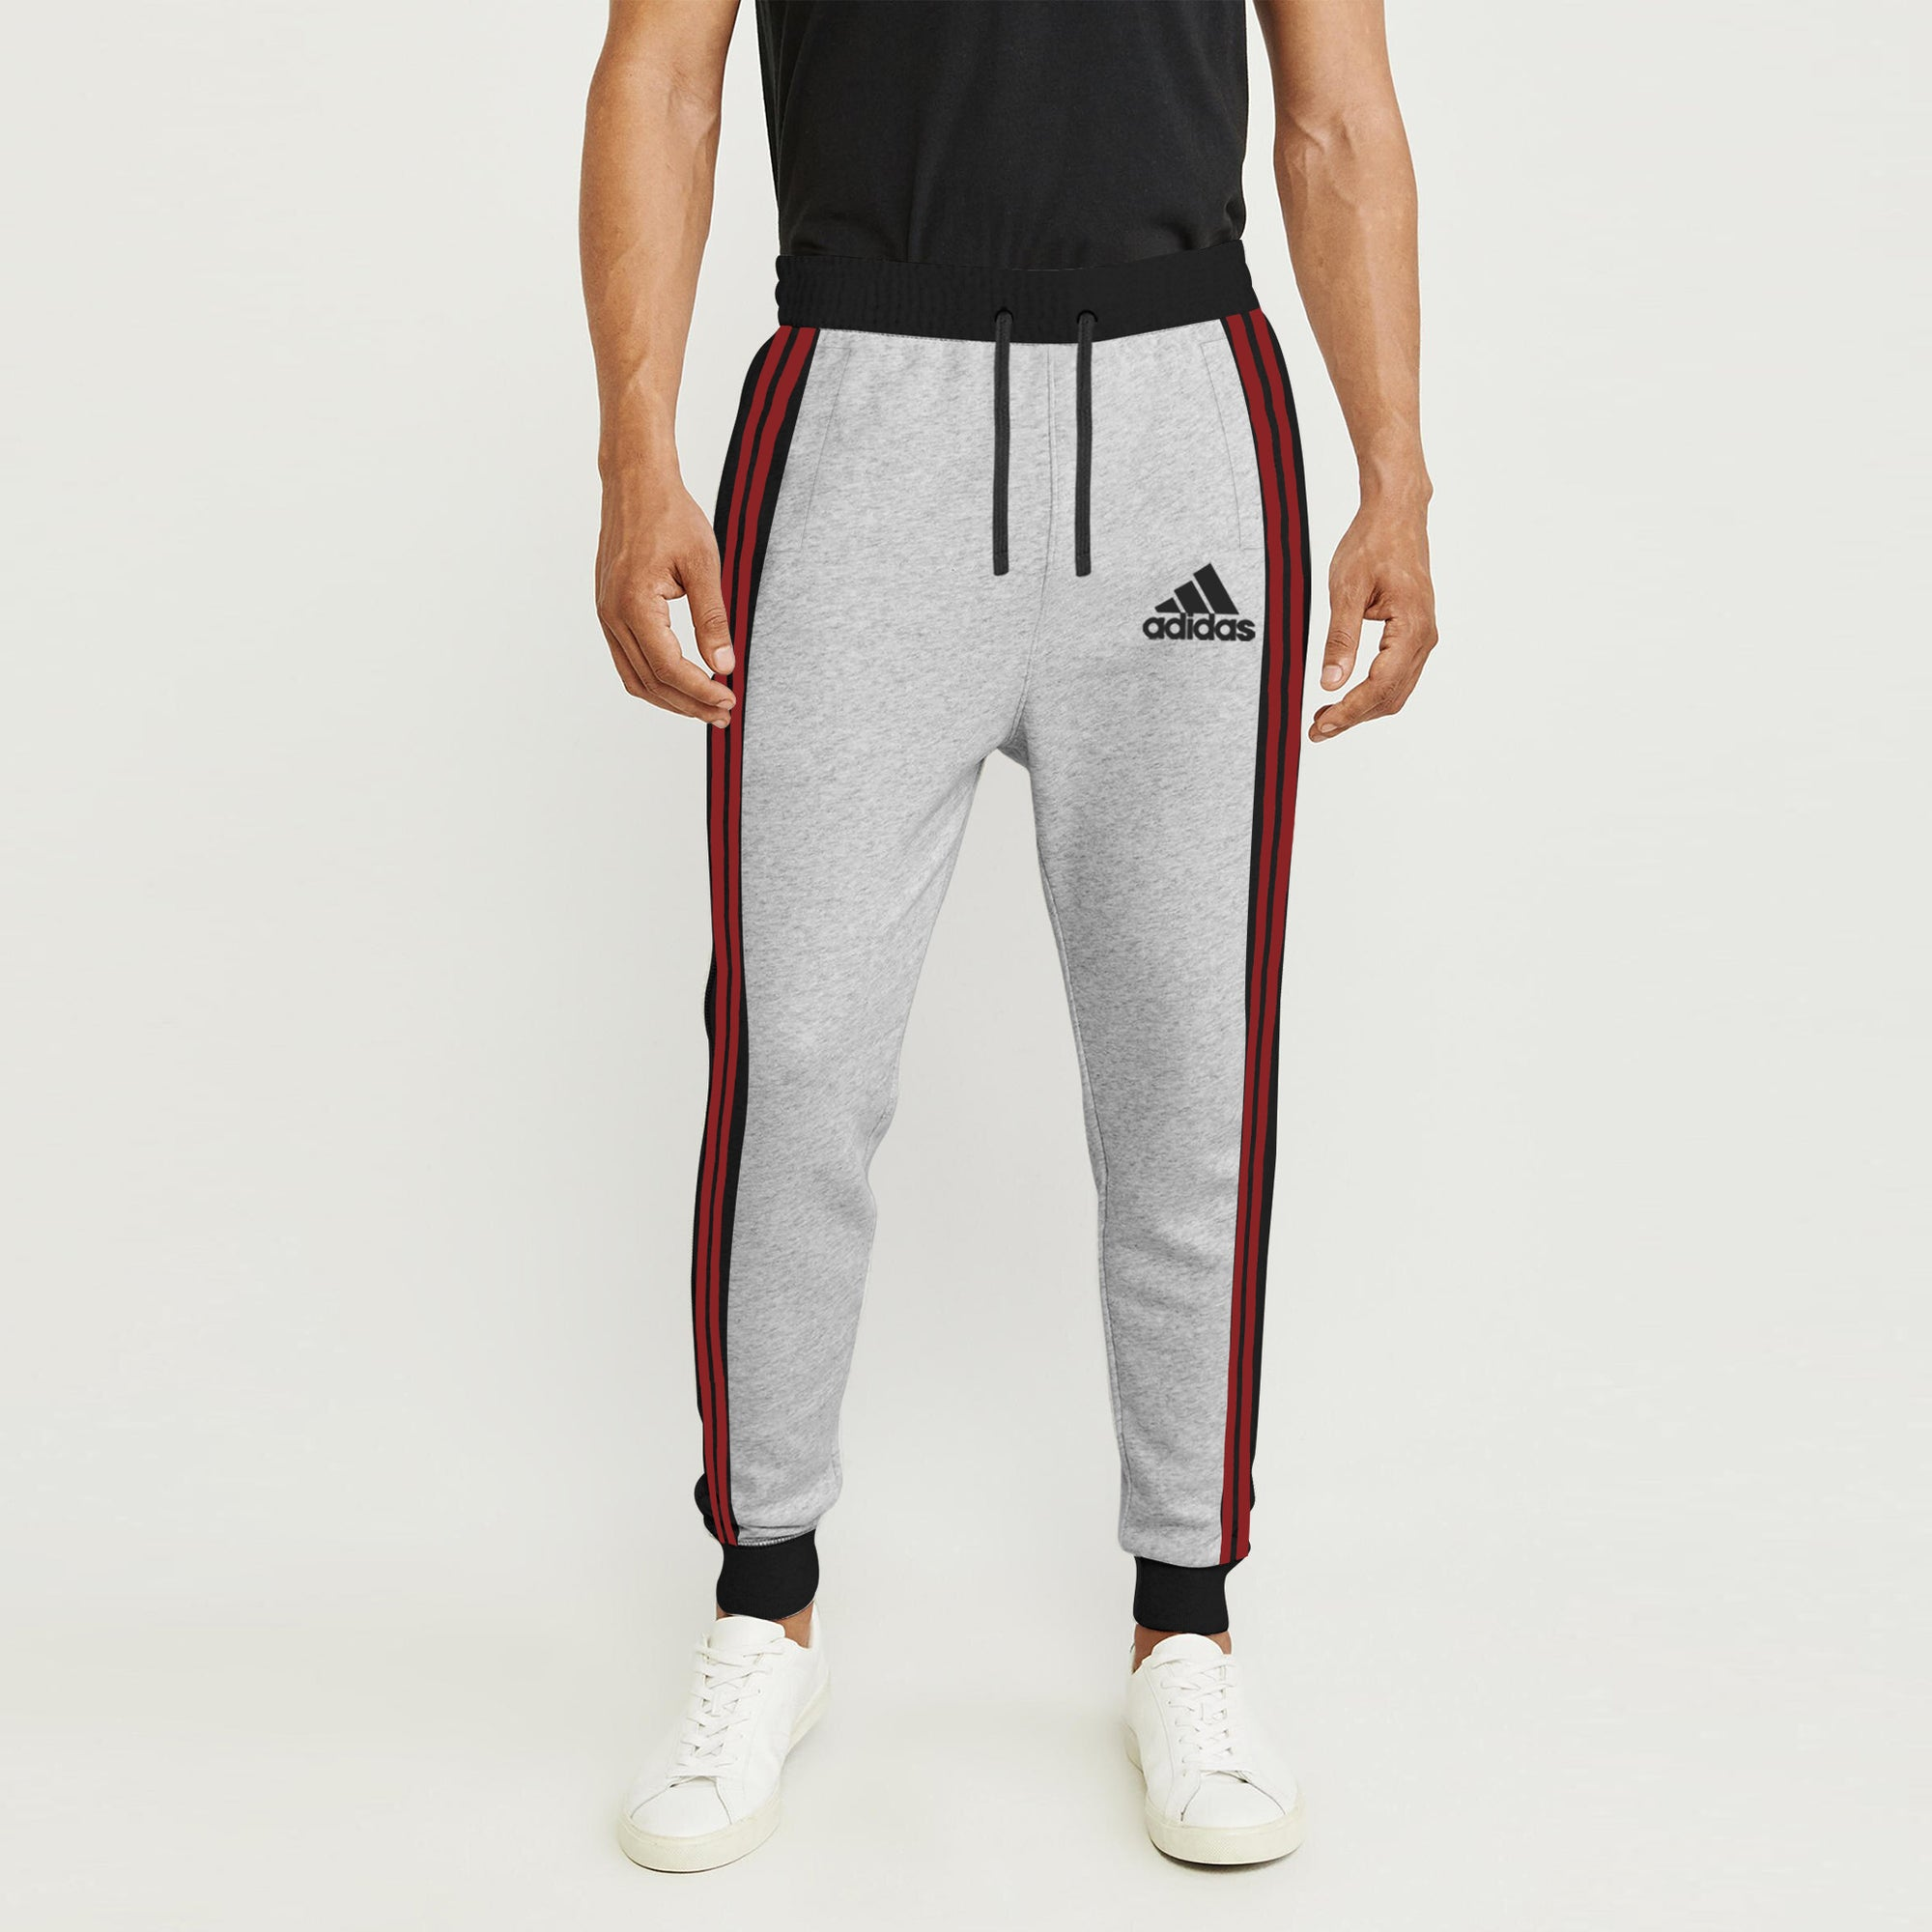 Adidas Single Jersey Slim Fit Jogger Trouser For Men-Grey With Charcoal & Red Stripe-BE8839